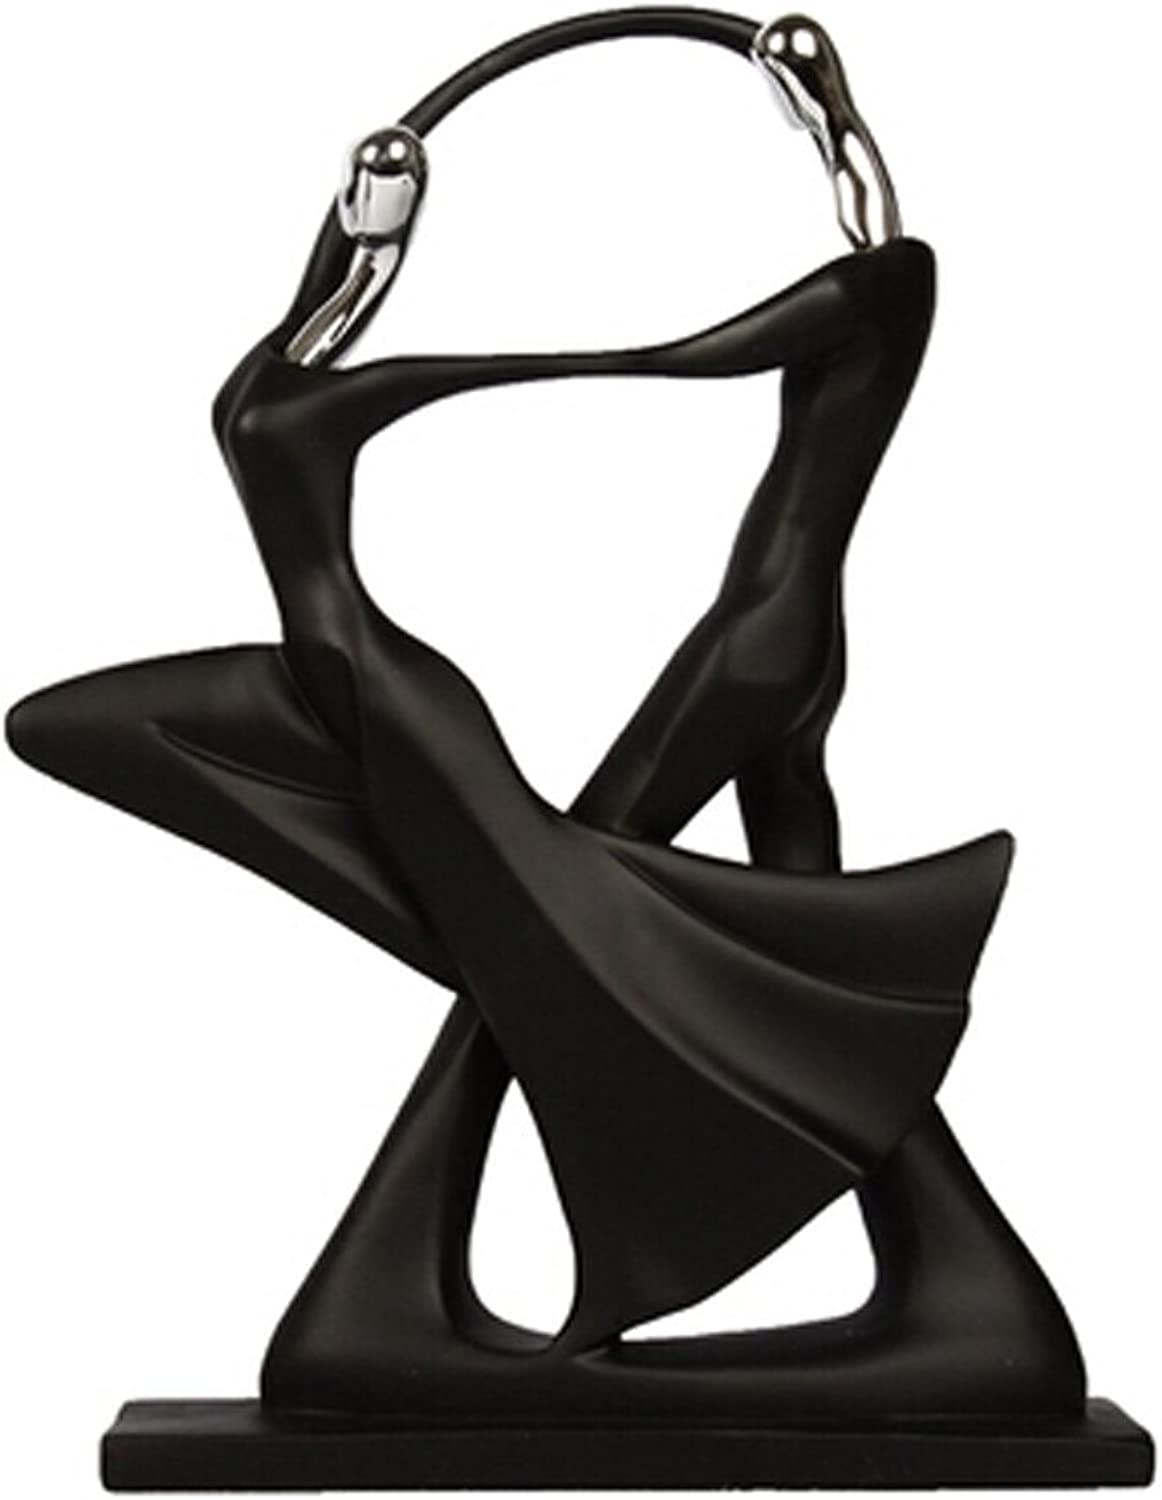 whiteho Modern Home Furnishings Ornaments Dancer Minimalist Decorations, No.1